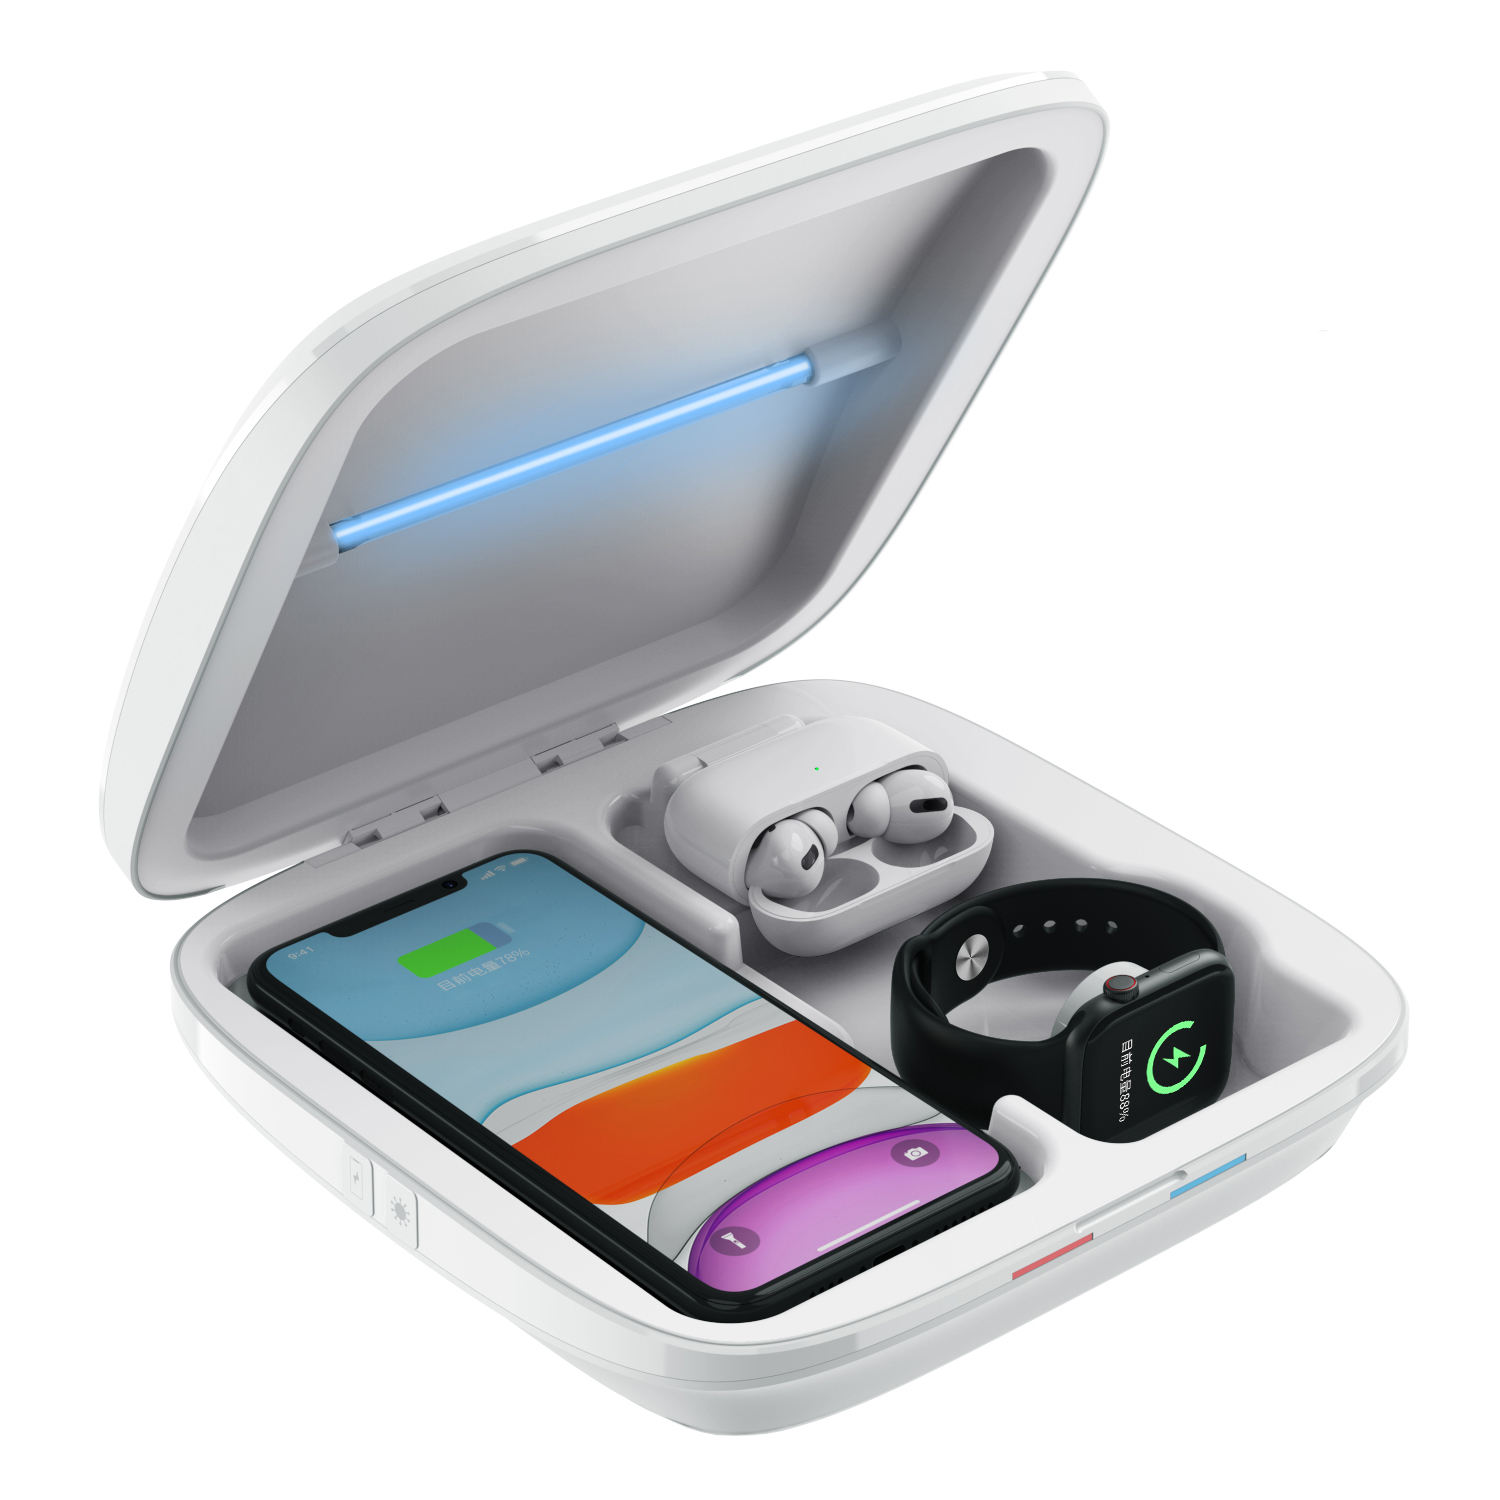 4 in 1 Multi Purpose Mobile Phone Fast Wireless Charging UV Light Sterilizing Box for iPhone Airpods iWatch